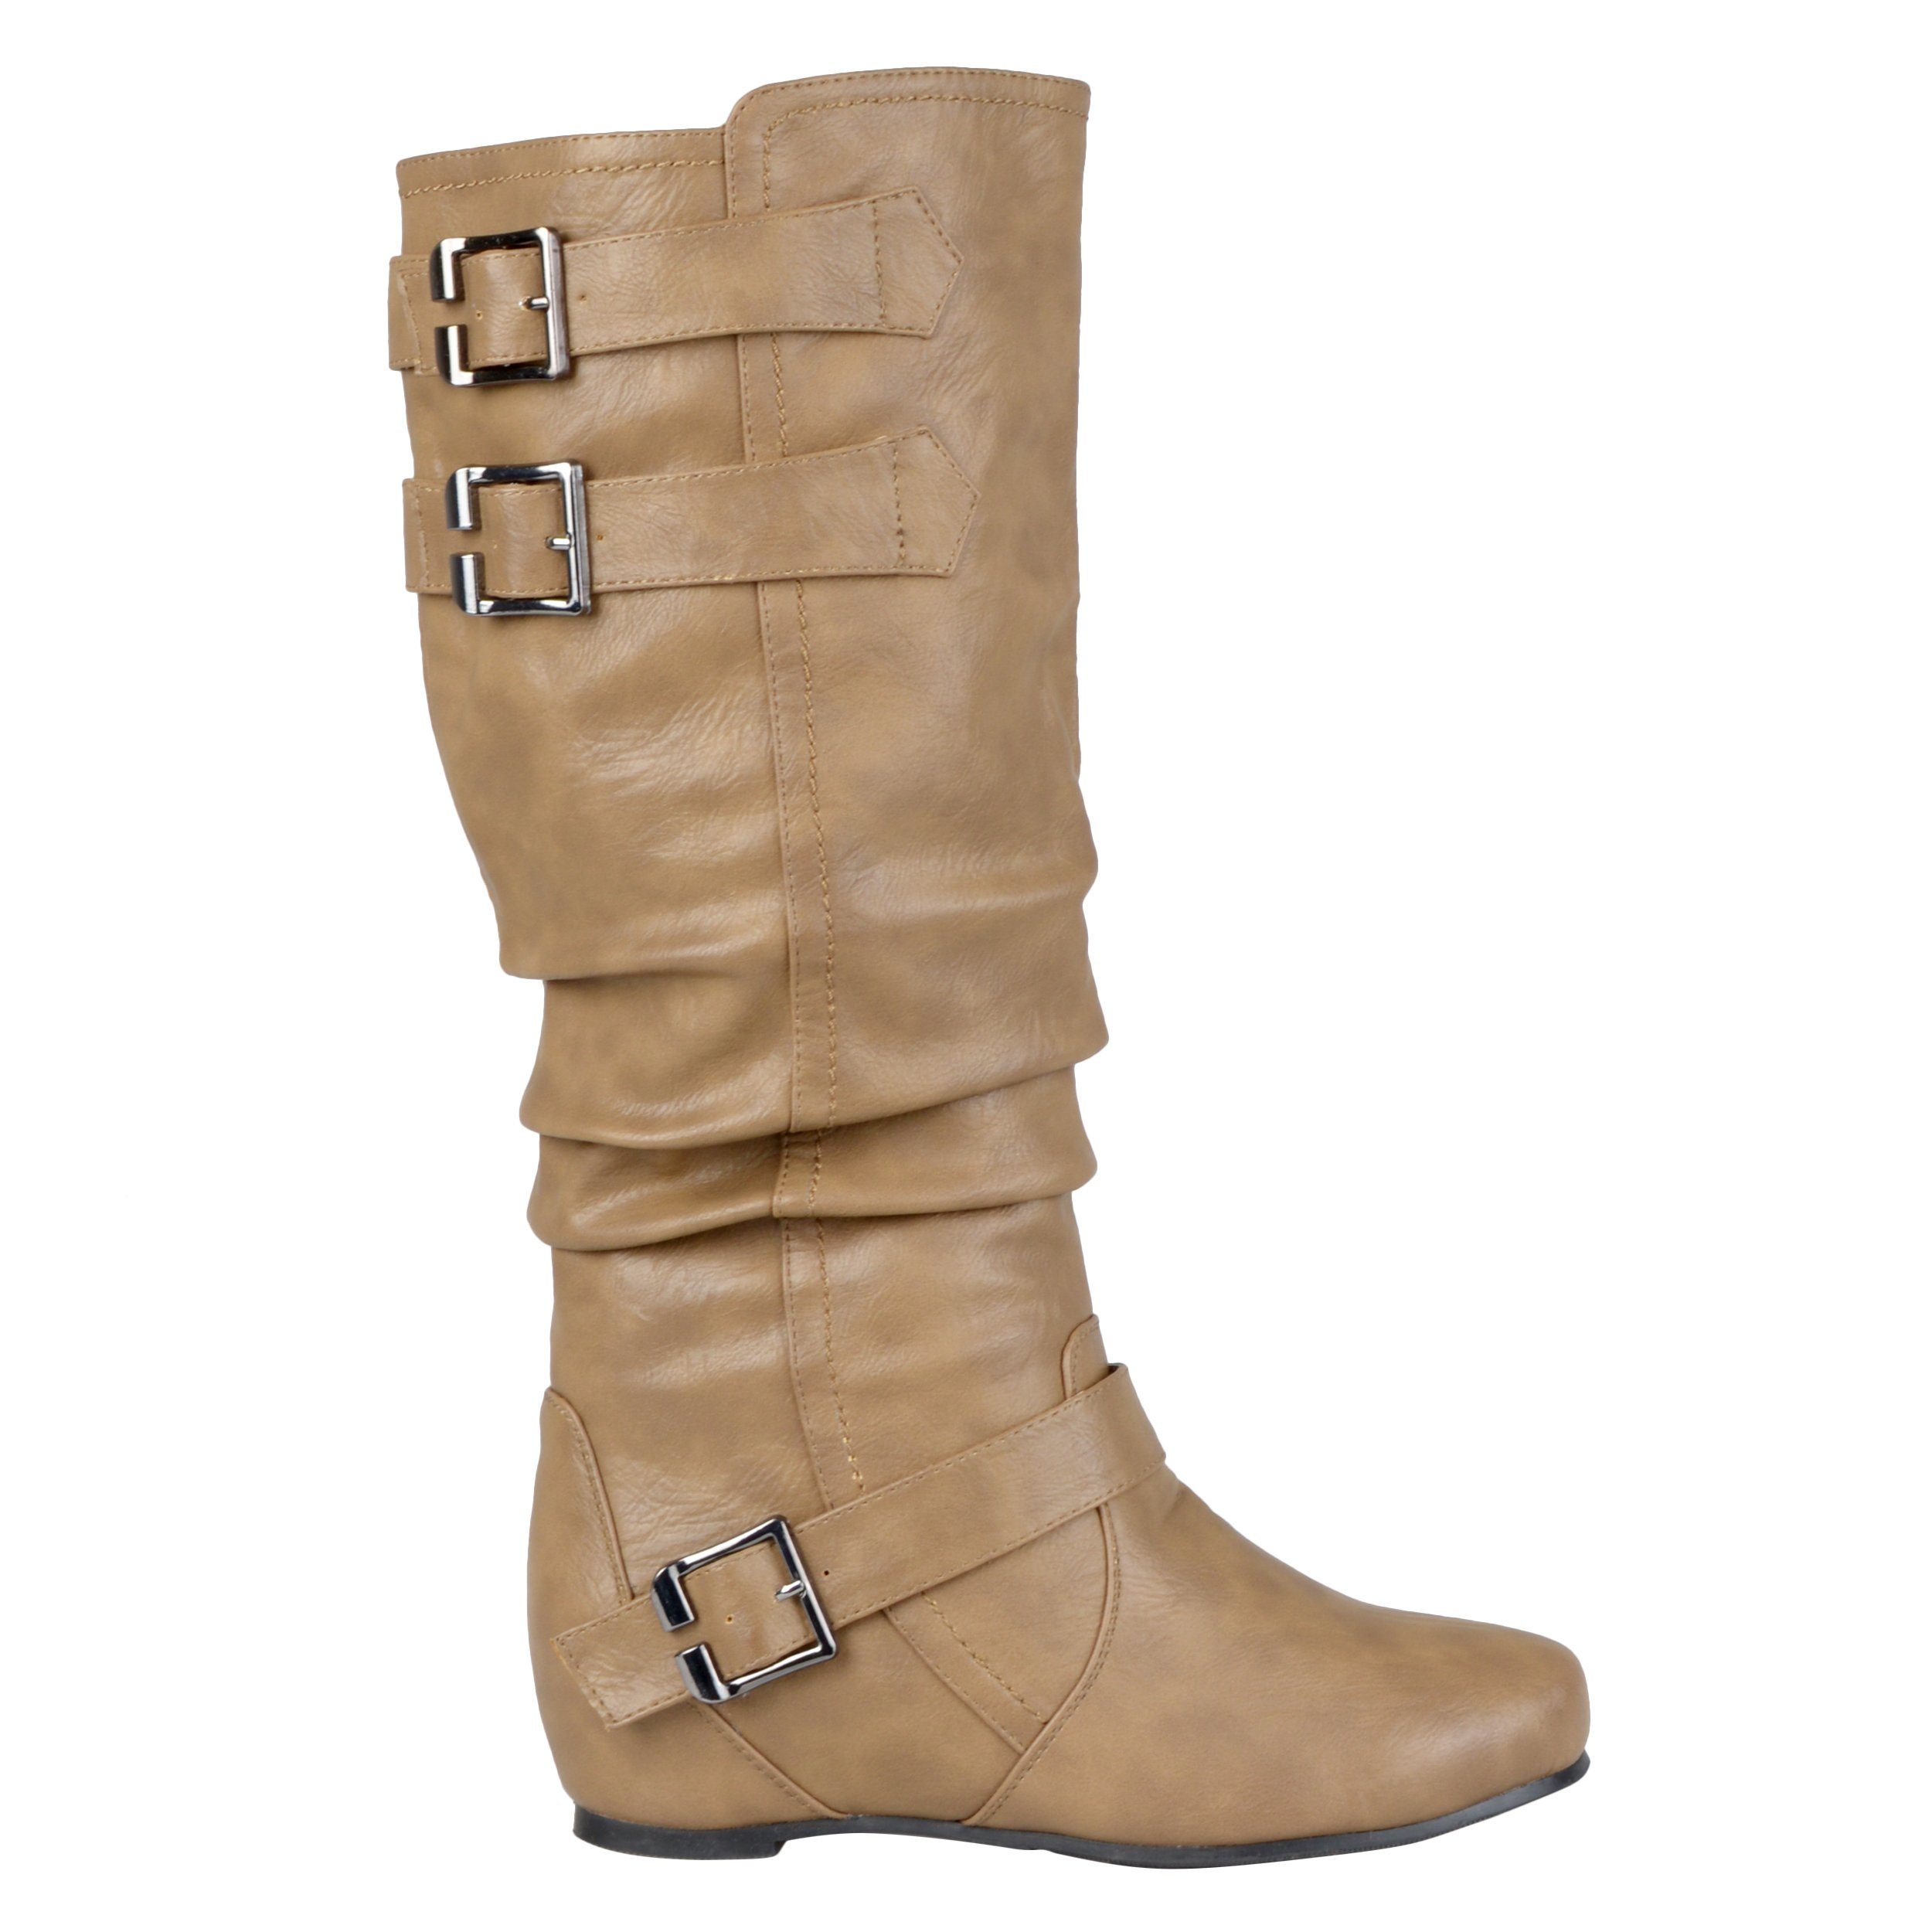 Brinley Co Women's Cammie Slouch Boot, Taupe, 8 M US